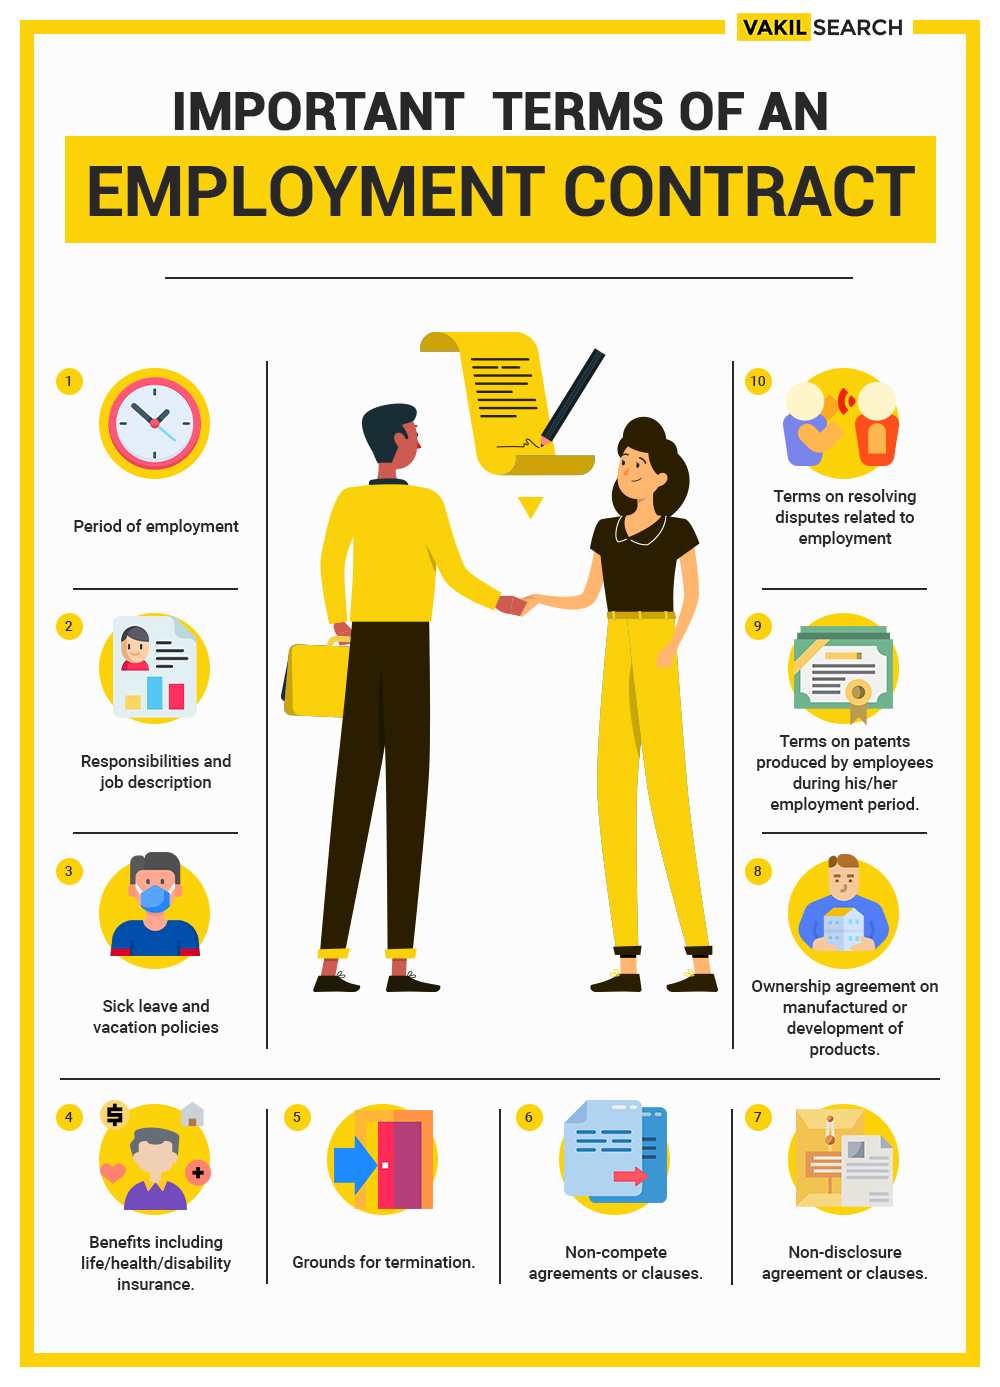 terms of an employment contract